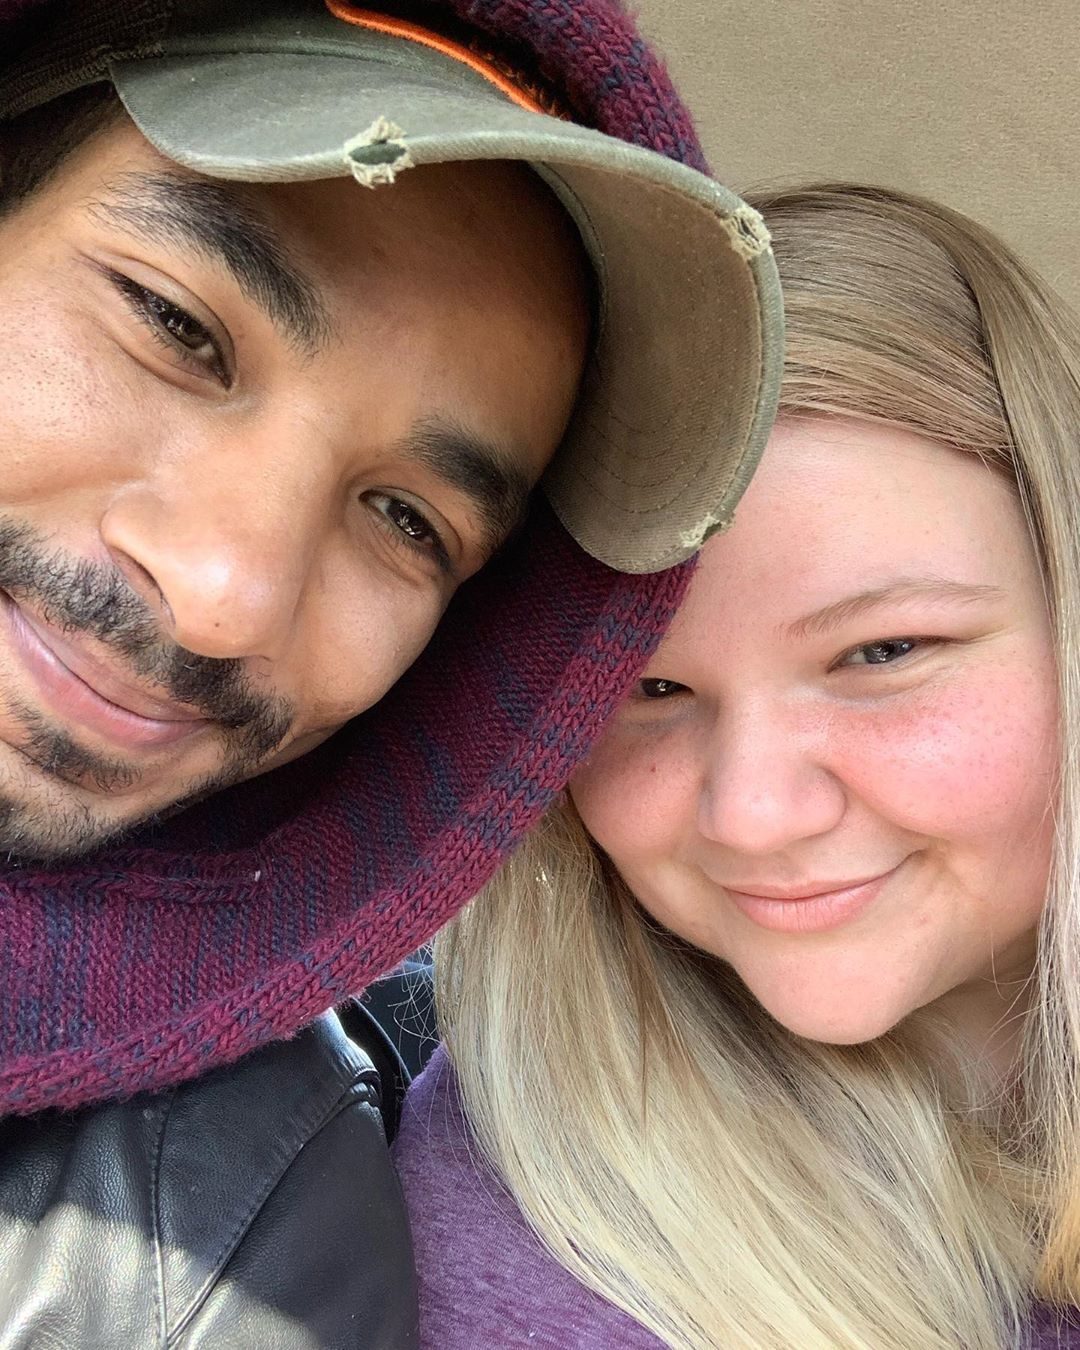 Nicole Nafziger Shares Morocco Selfie With Azan Tefou on March 11